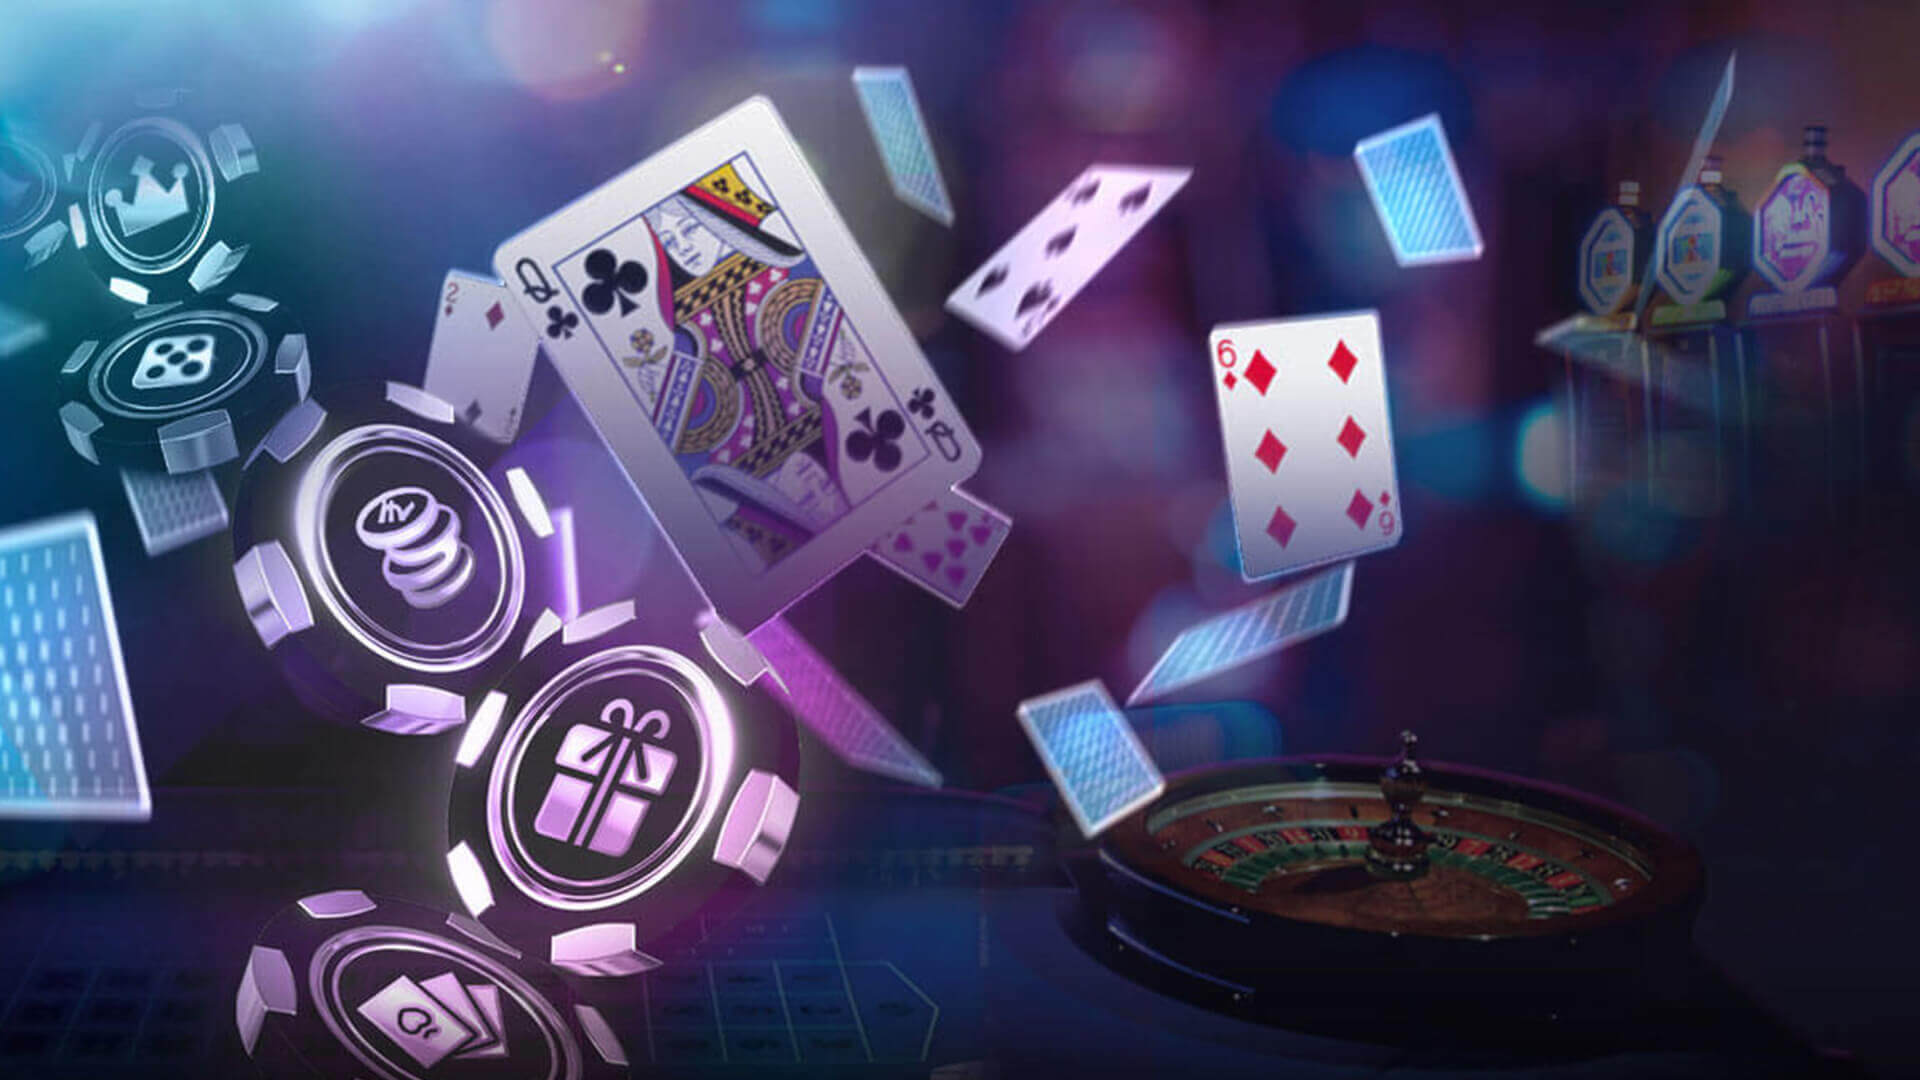 In 15 Minutes, I Will Offer You The Truth About Online Gambling